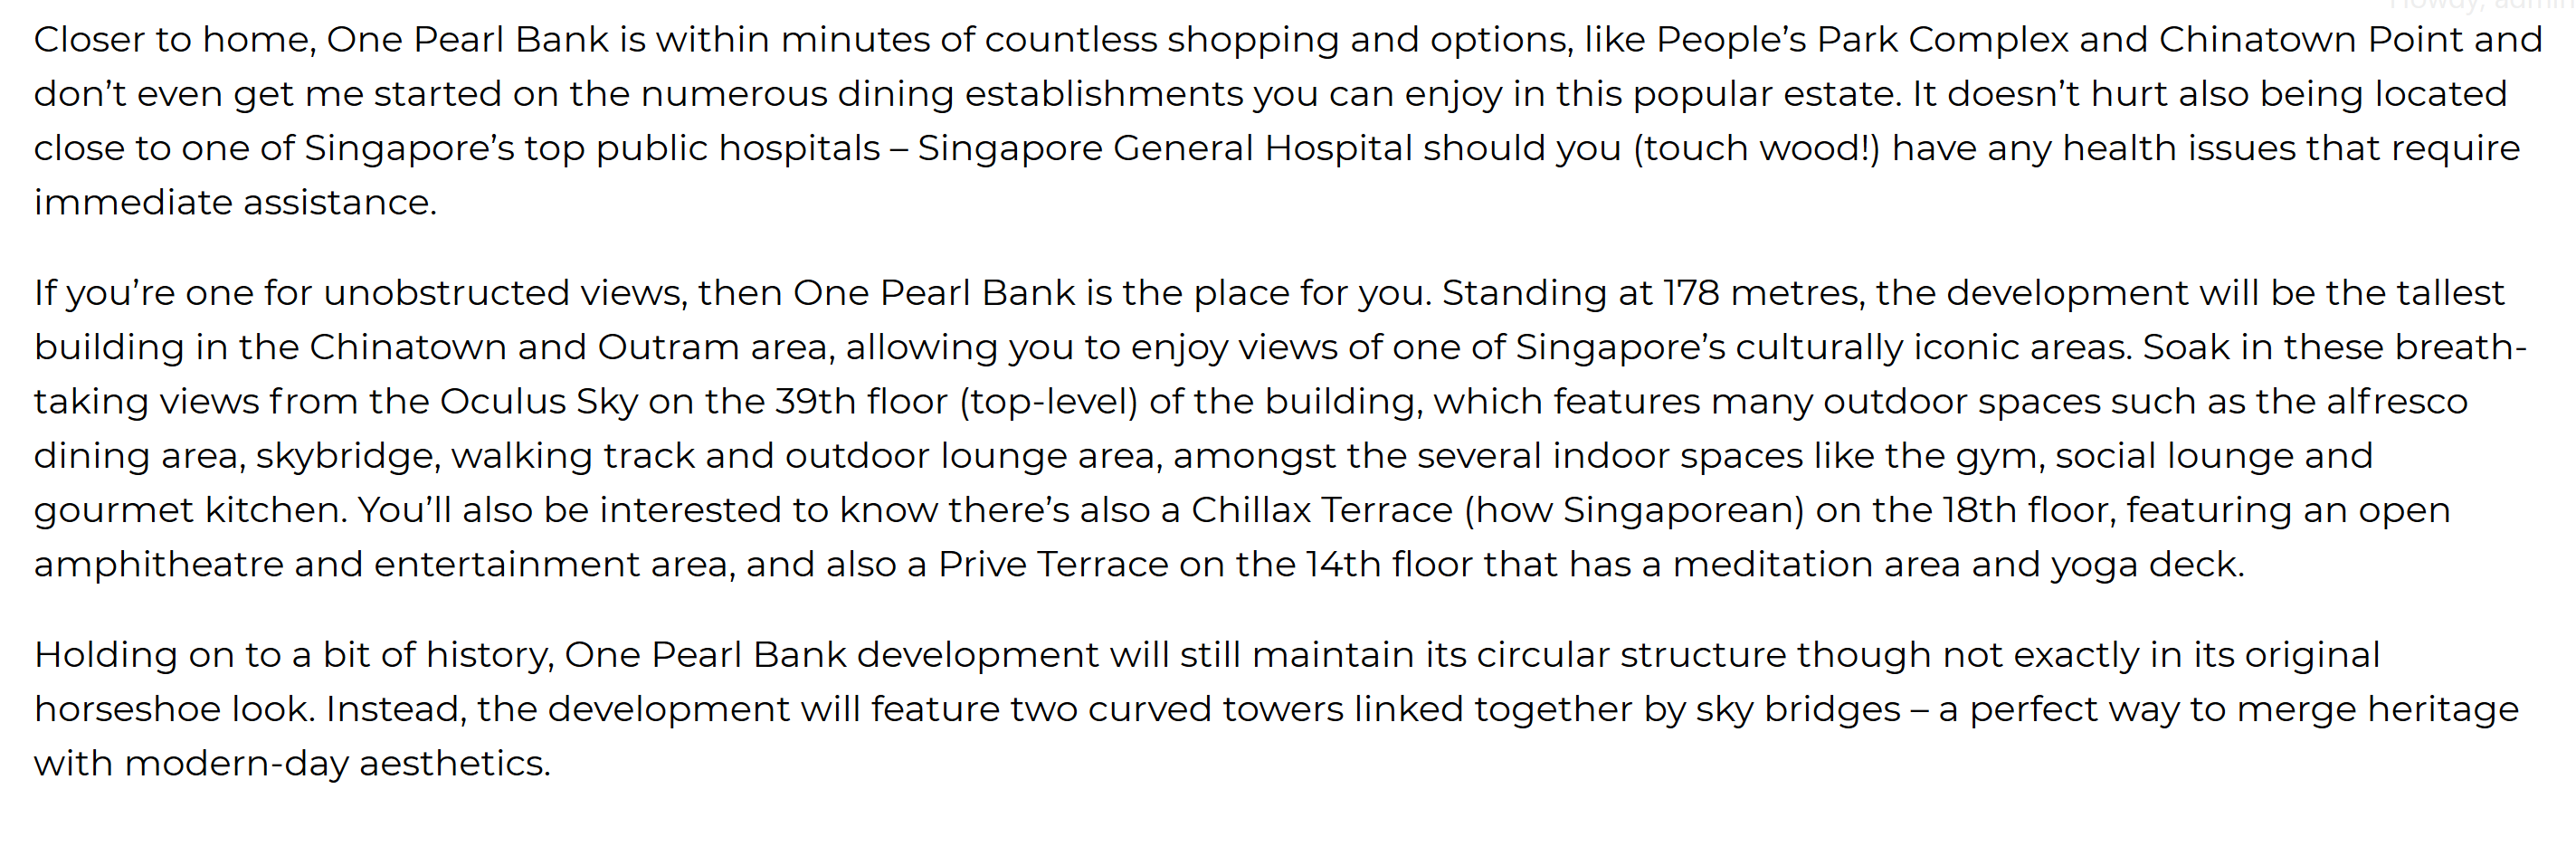 One-Pearl-Bank-news-article-5-singapore